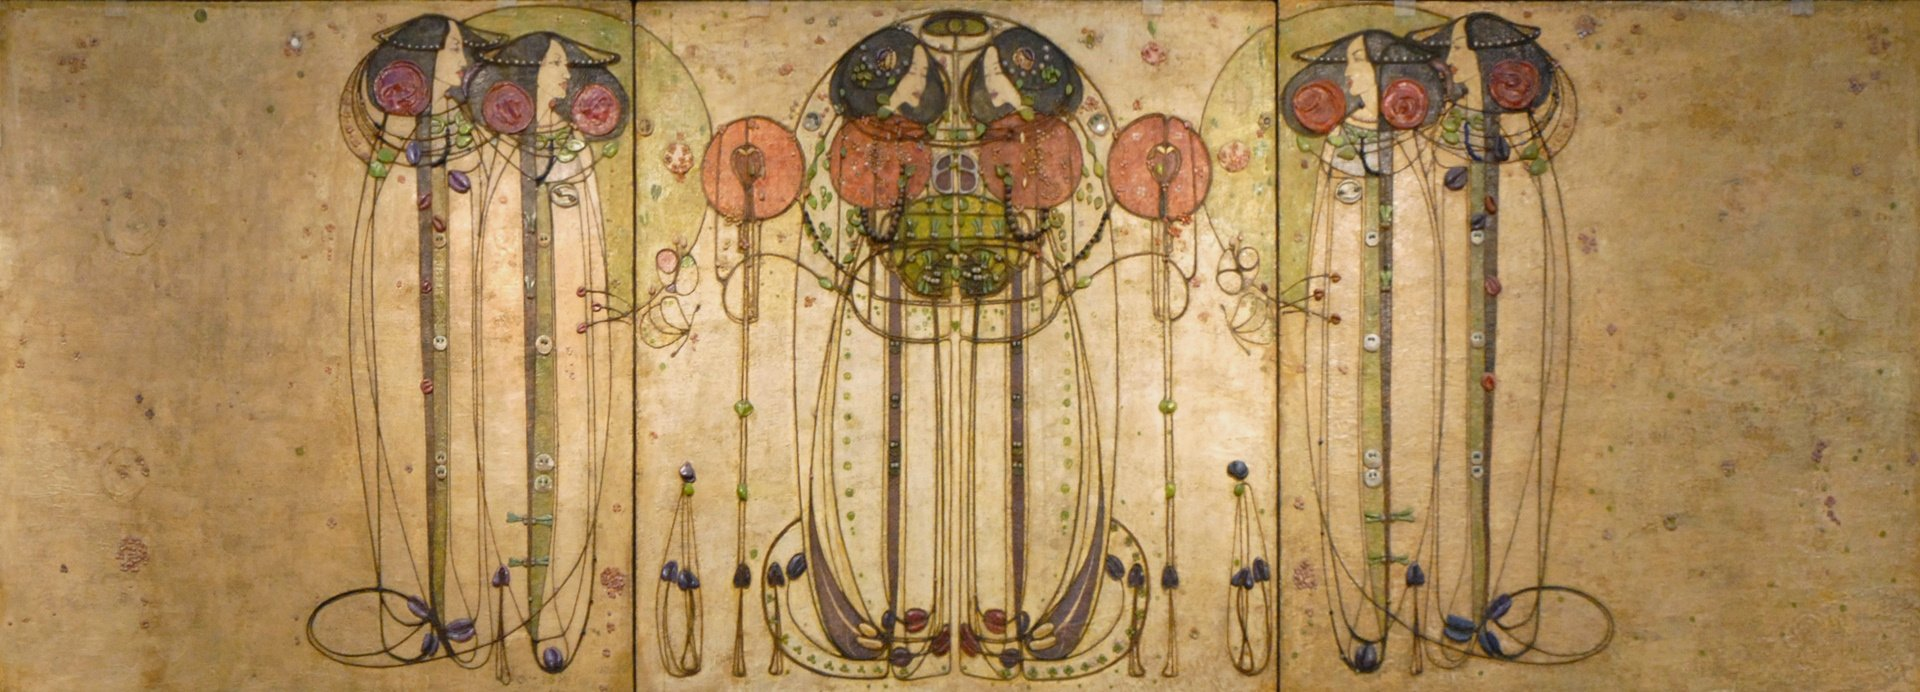 Wassail, Charles Rennie Mackintosh